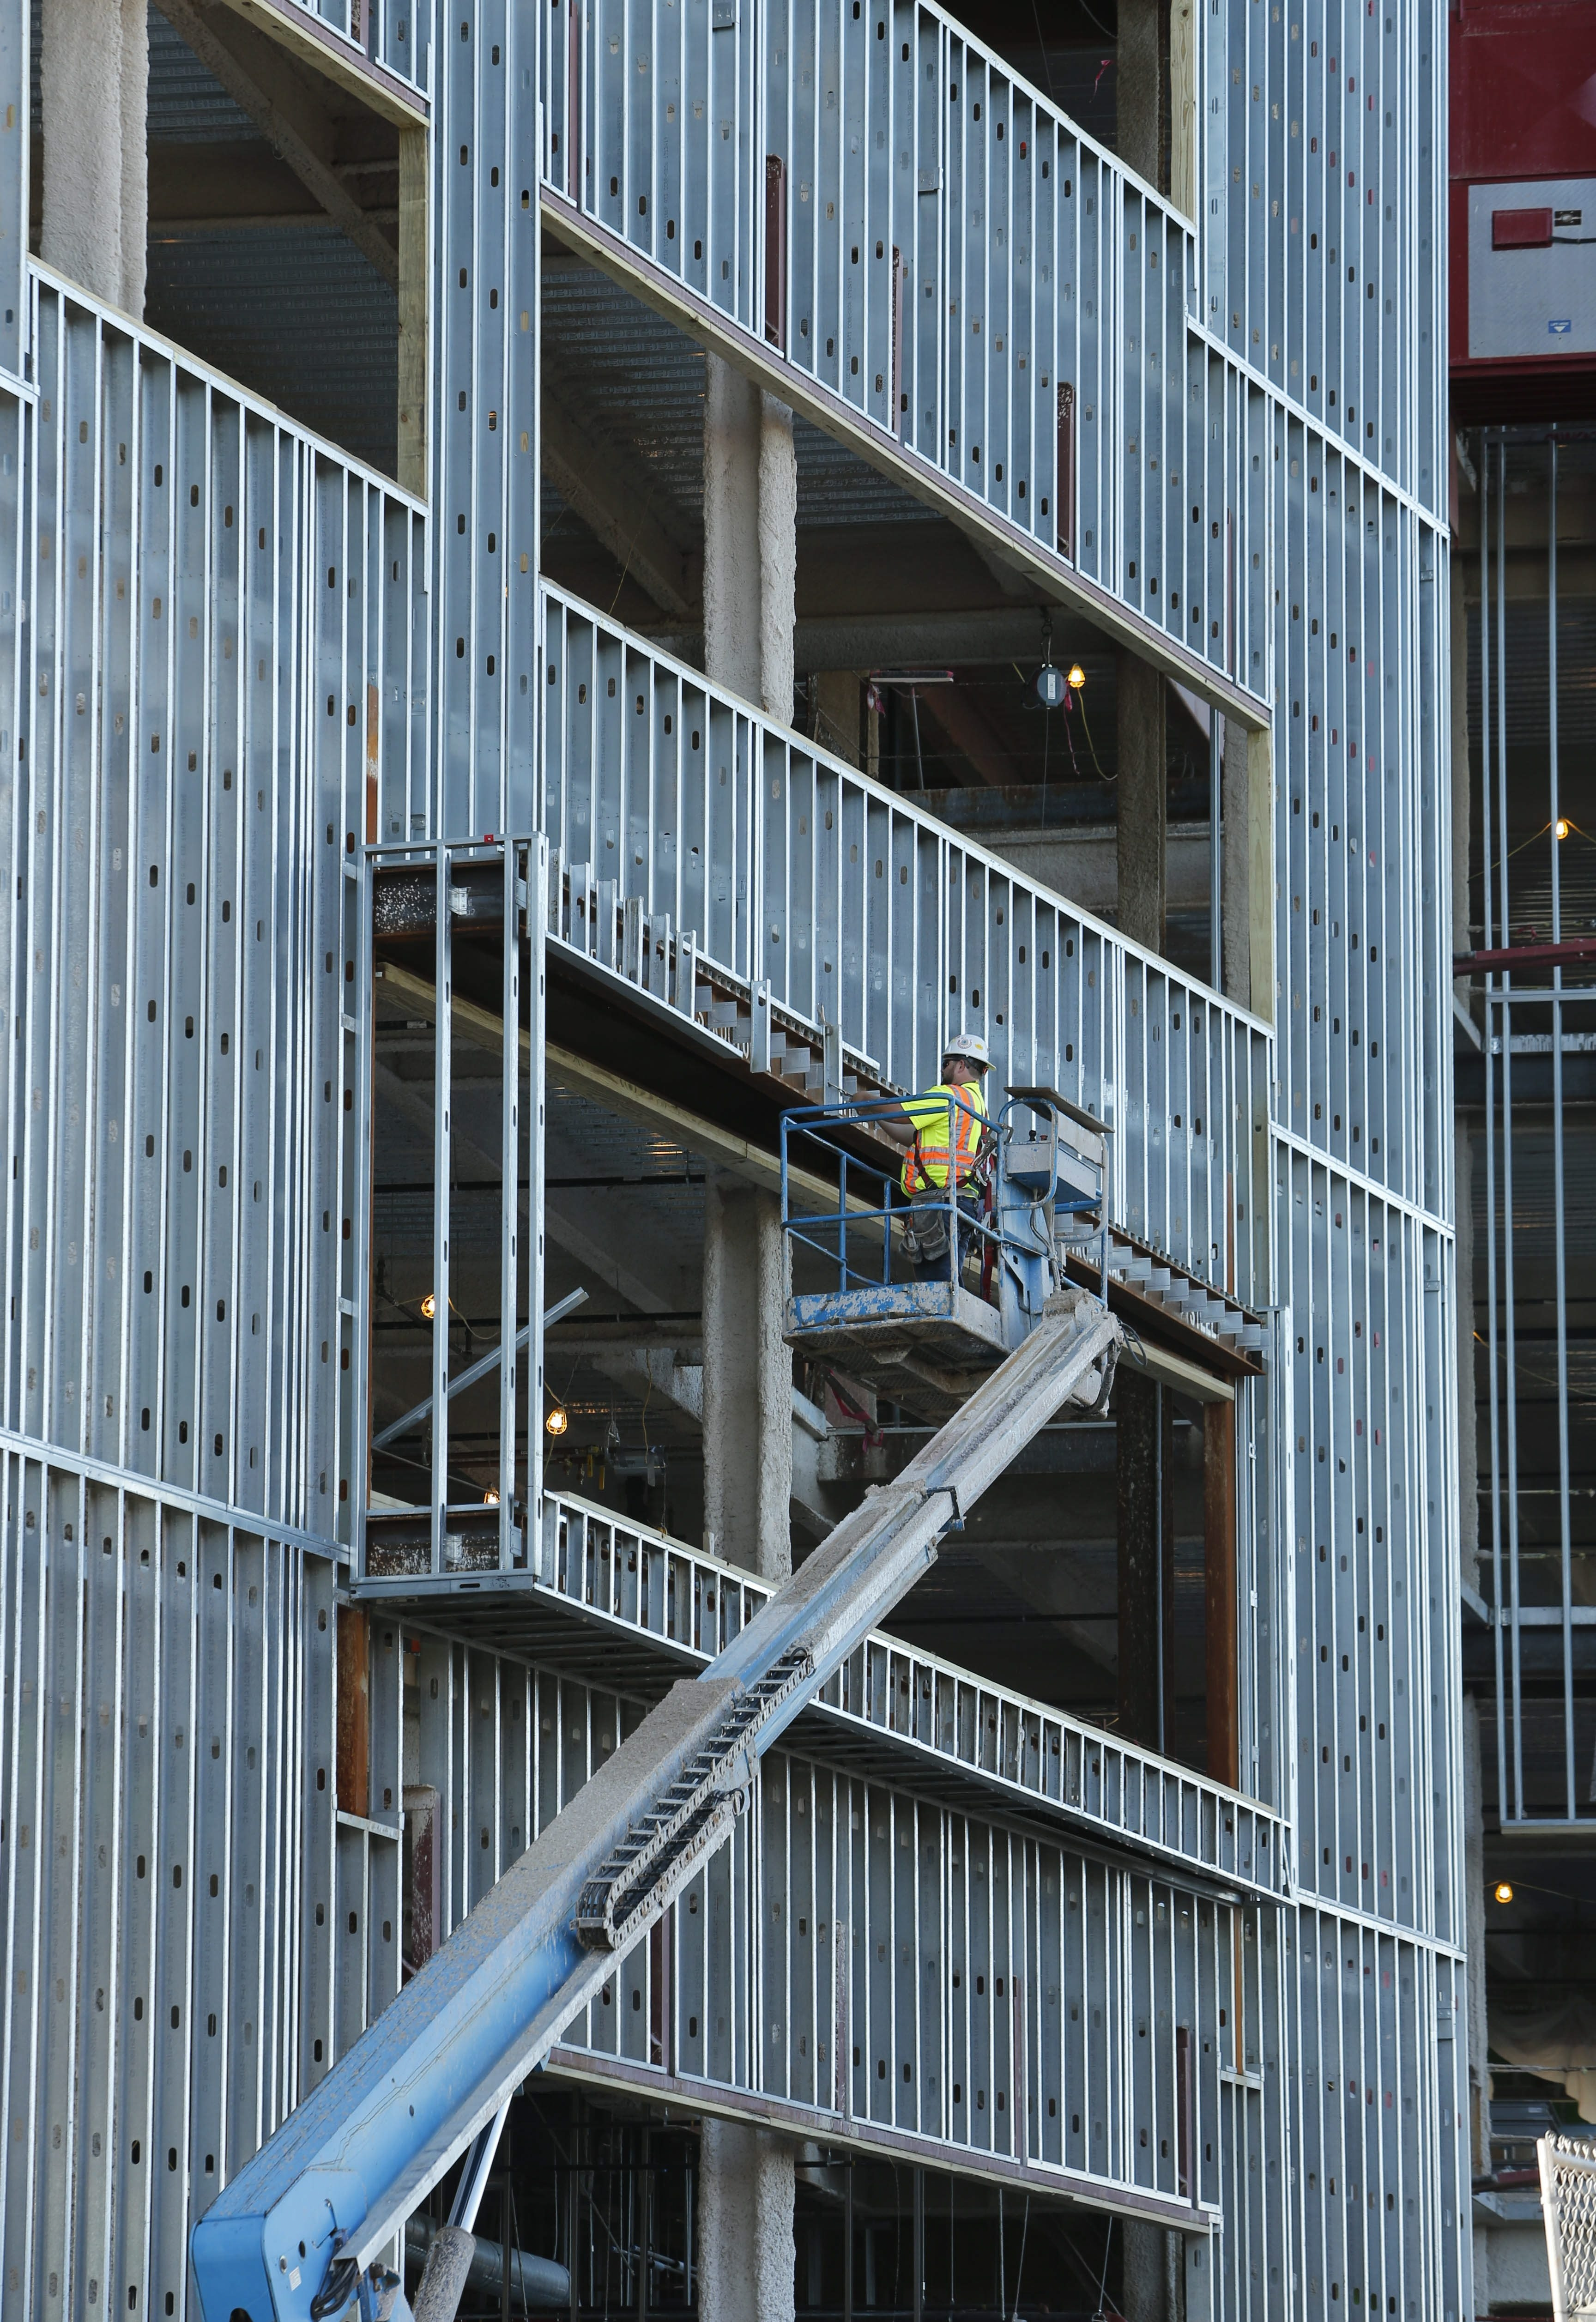 A worker uses a lift while installing the facade of the new Conventus Building.